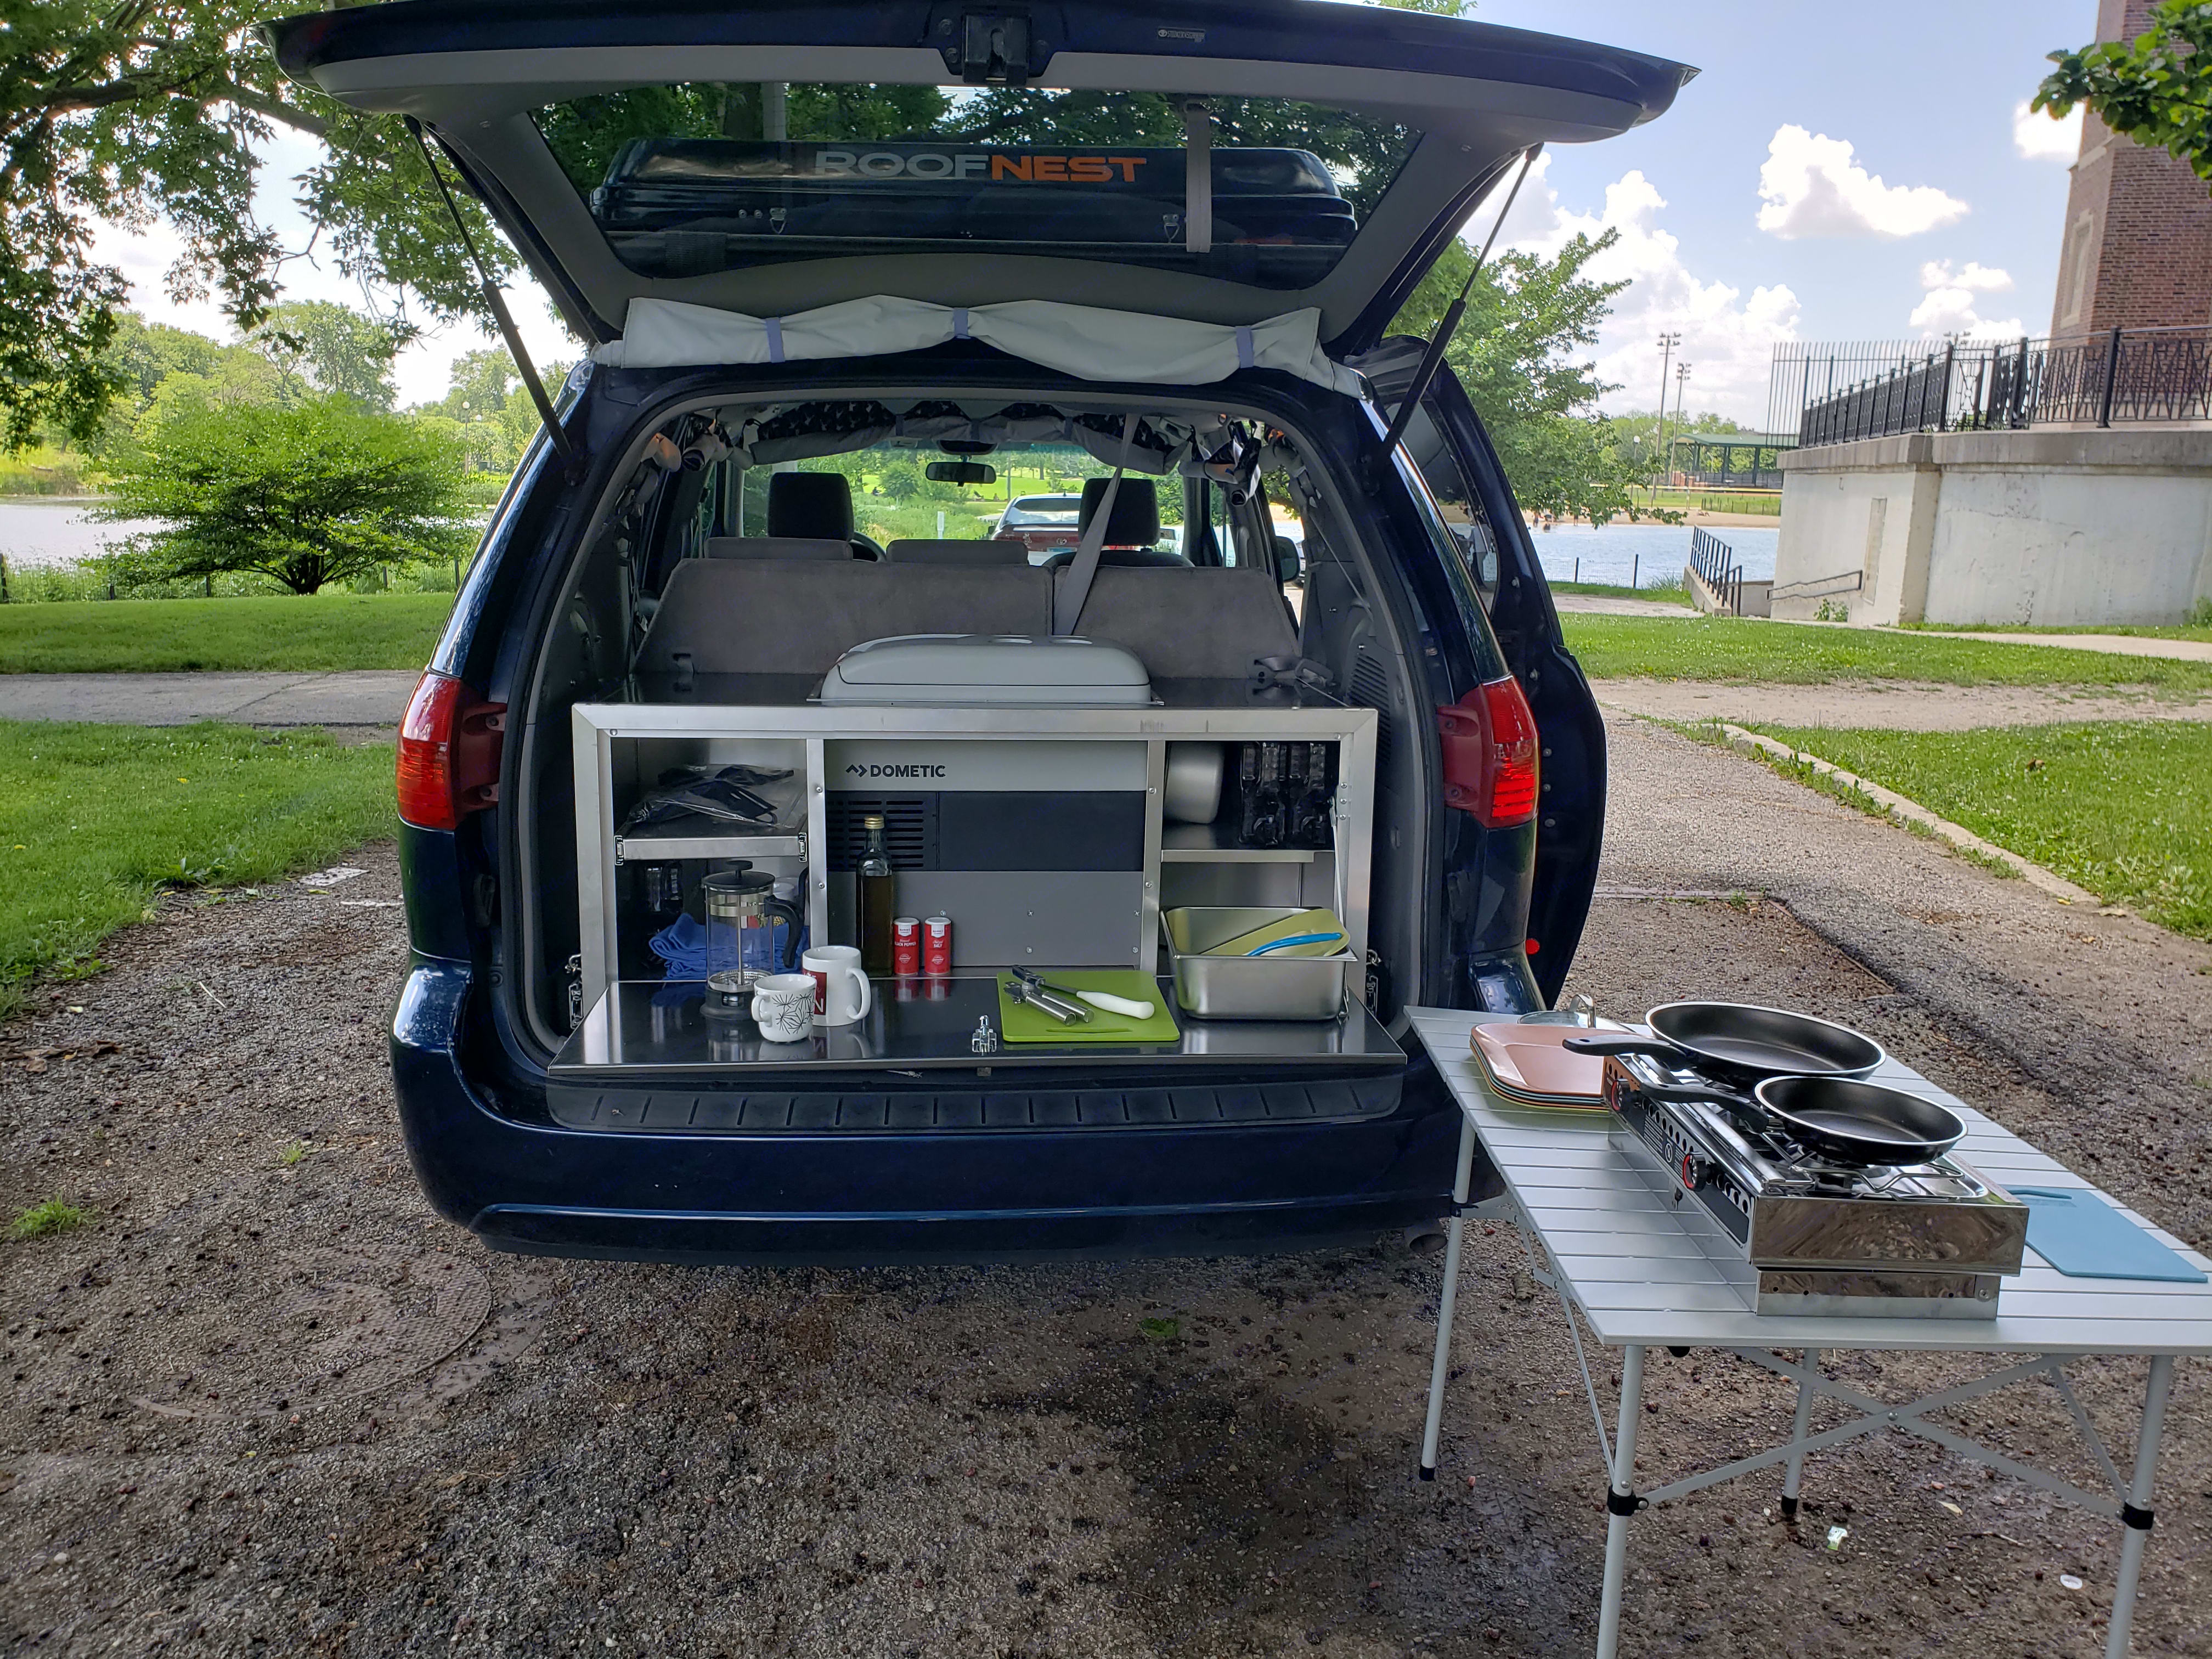 Refrigerator, 2 burner alcohol stove, wash basins, water tanks, kitchen essentials. Extra table for prep/outside dining.. Toyota Sienna 2005